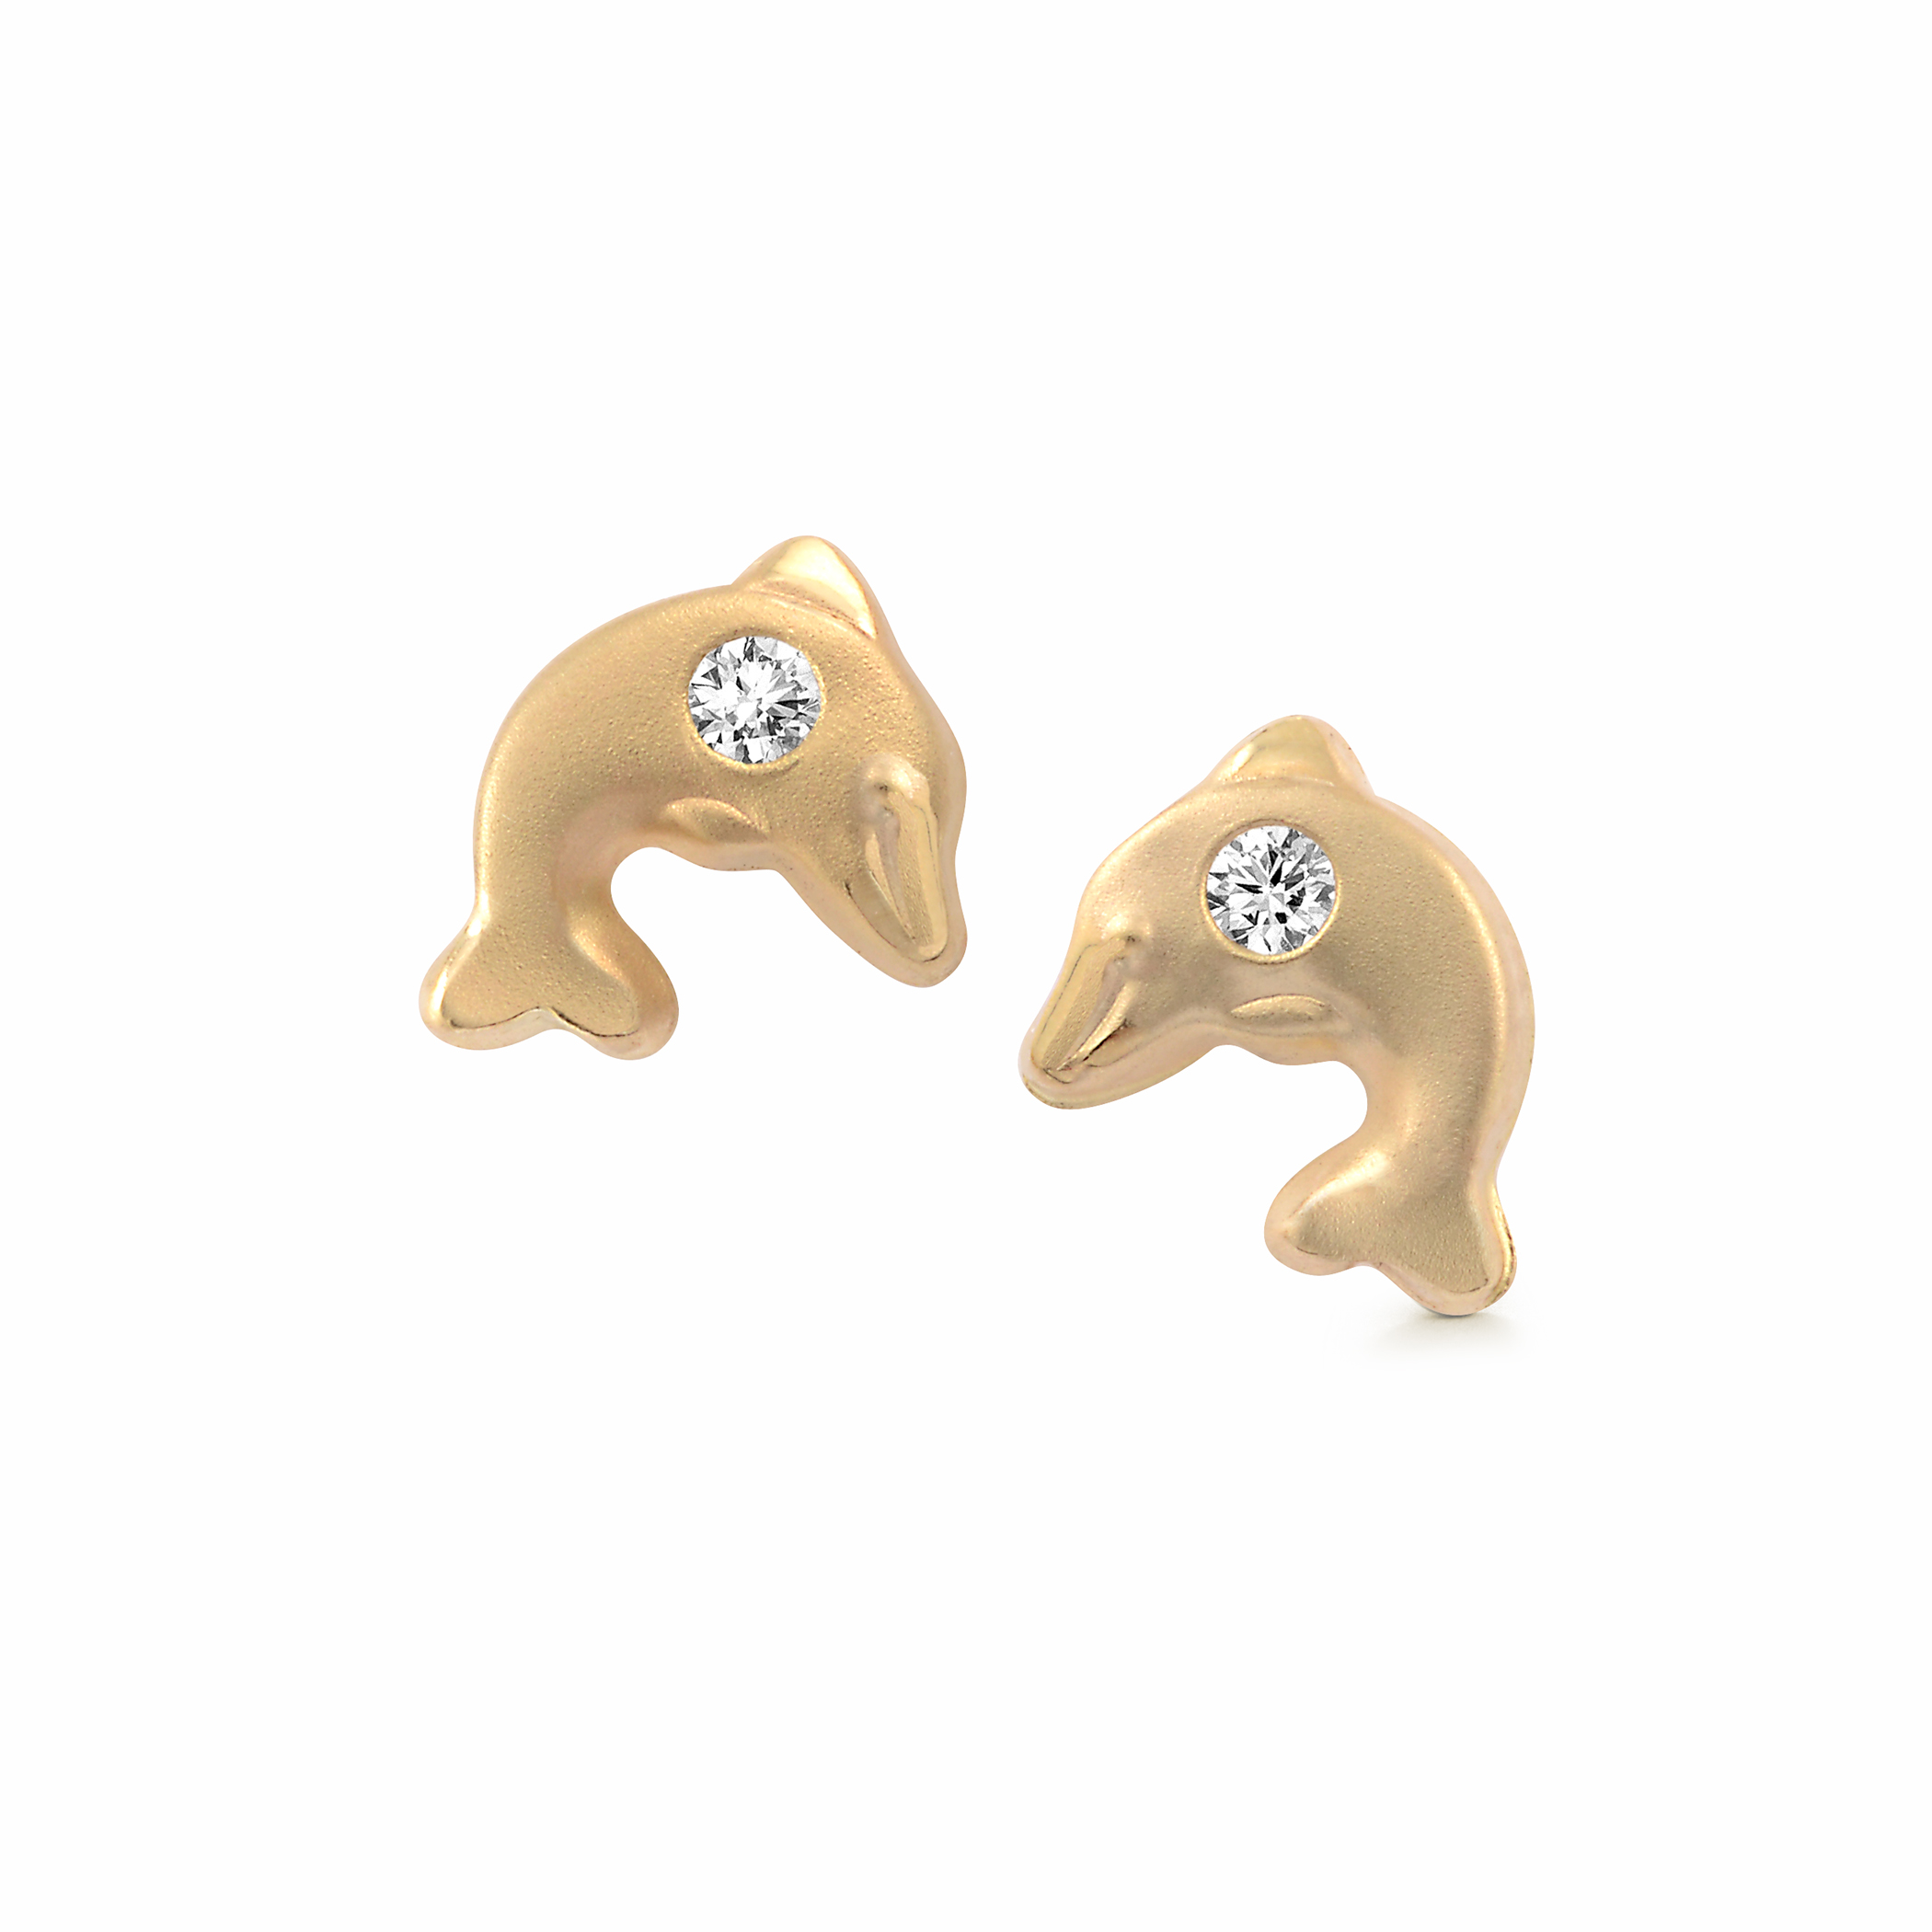 Dolphin stud earrings with cubic zirconia for babies/children - 10K yellow Gold